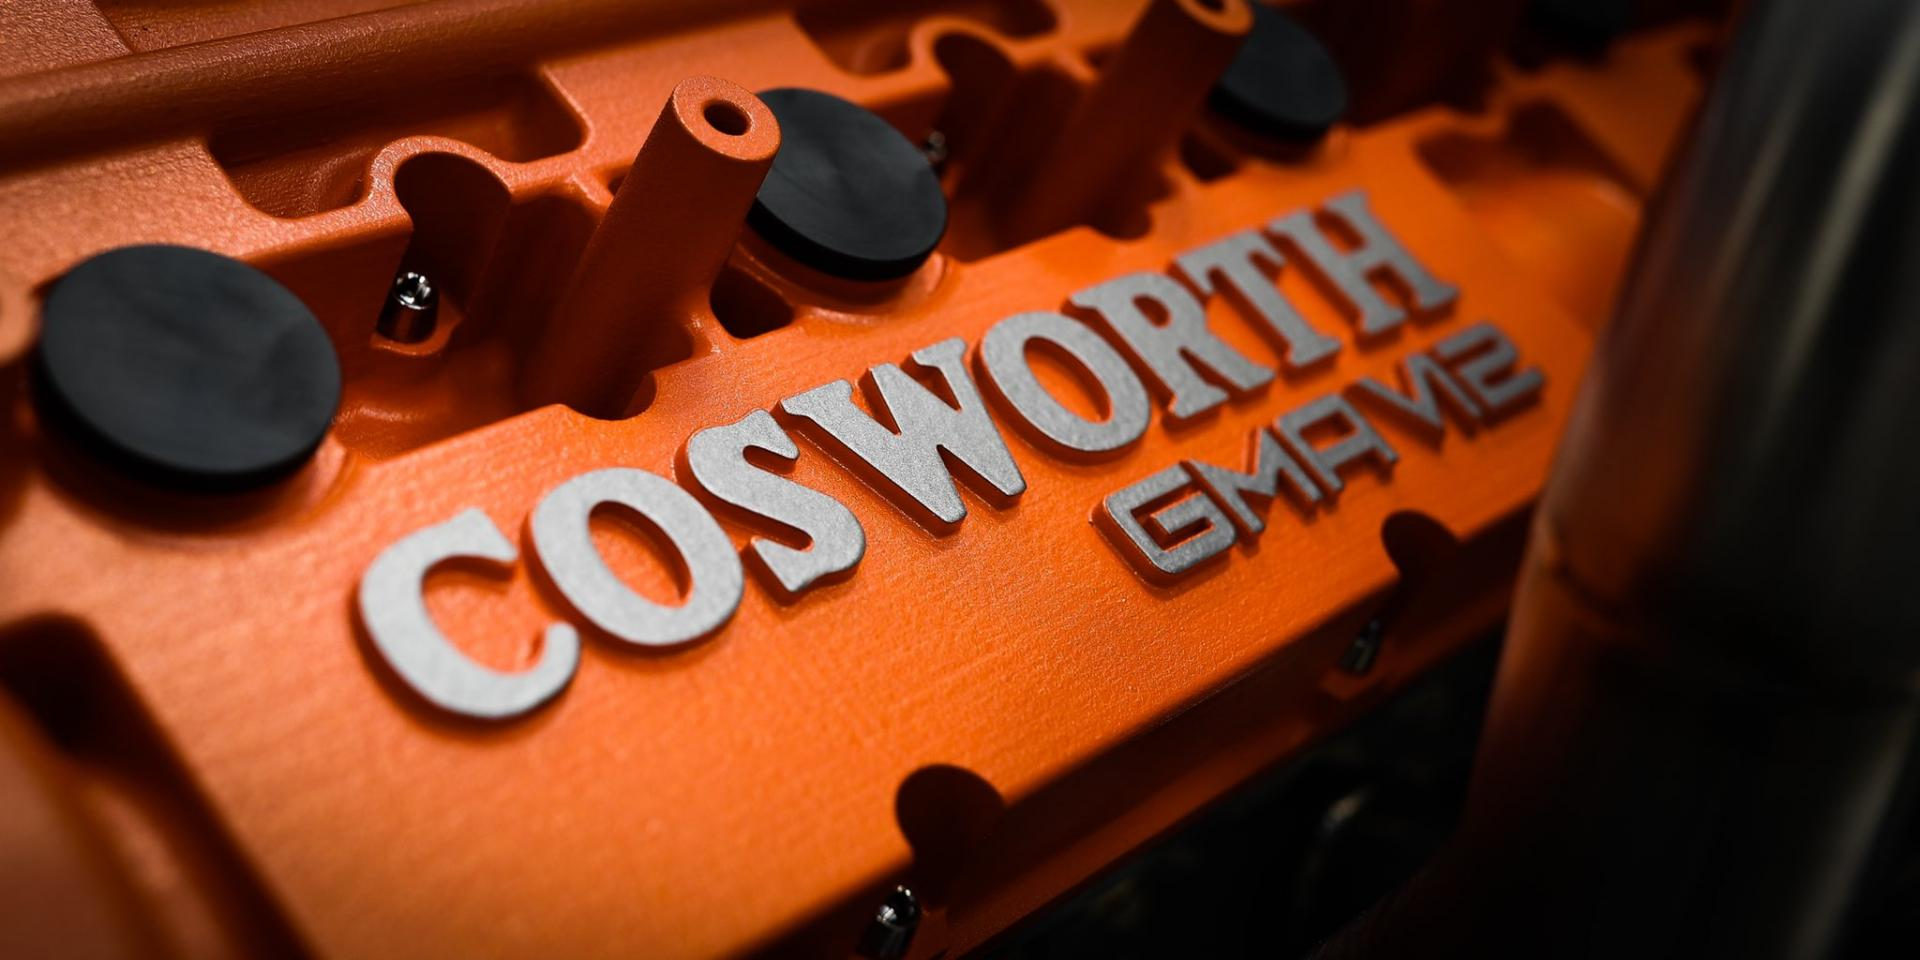 Gordon Murray's V12 door Cosworth GMA